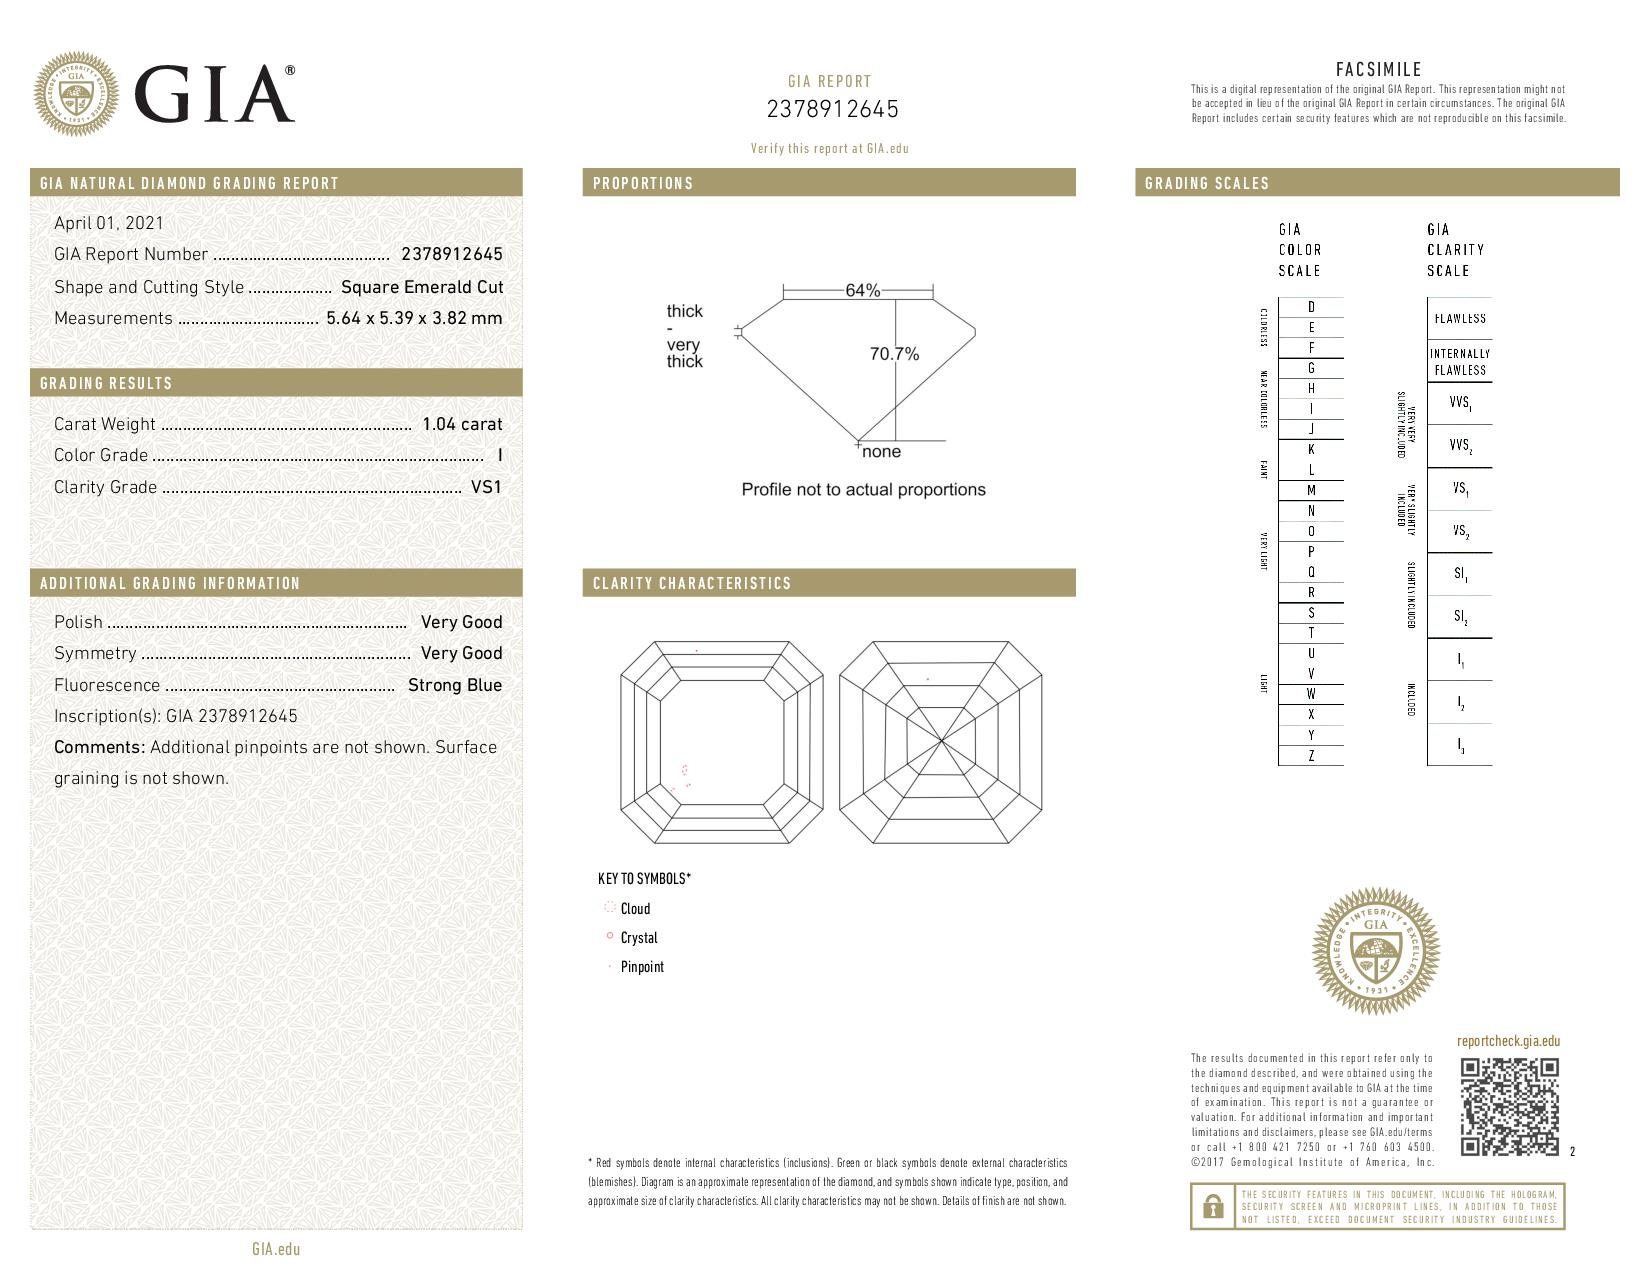 This is a 1.04 carat asscher shape, I color, VS1 clarity natural diamond accompanied by a GIA grading report.